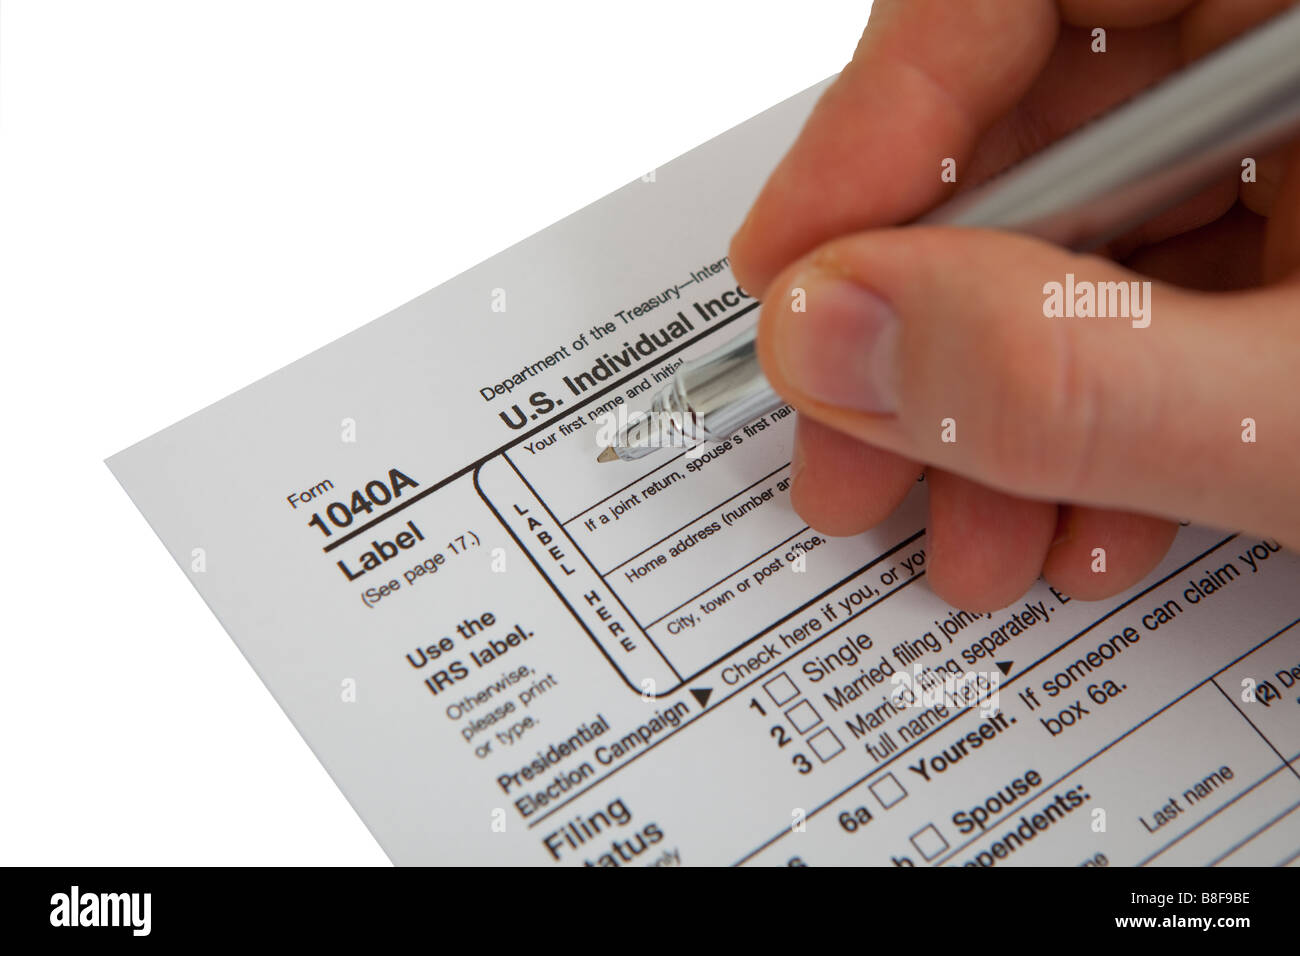 Filling income tax form with pen isolated against white background filling income tax form with pen isolated against white background solutioingenieria Choice Image